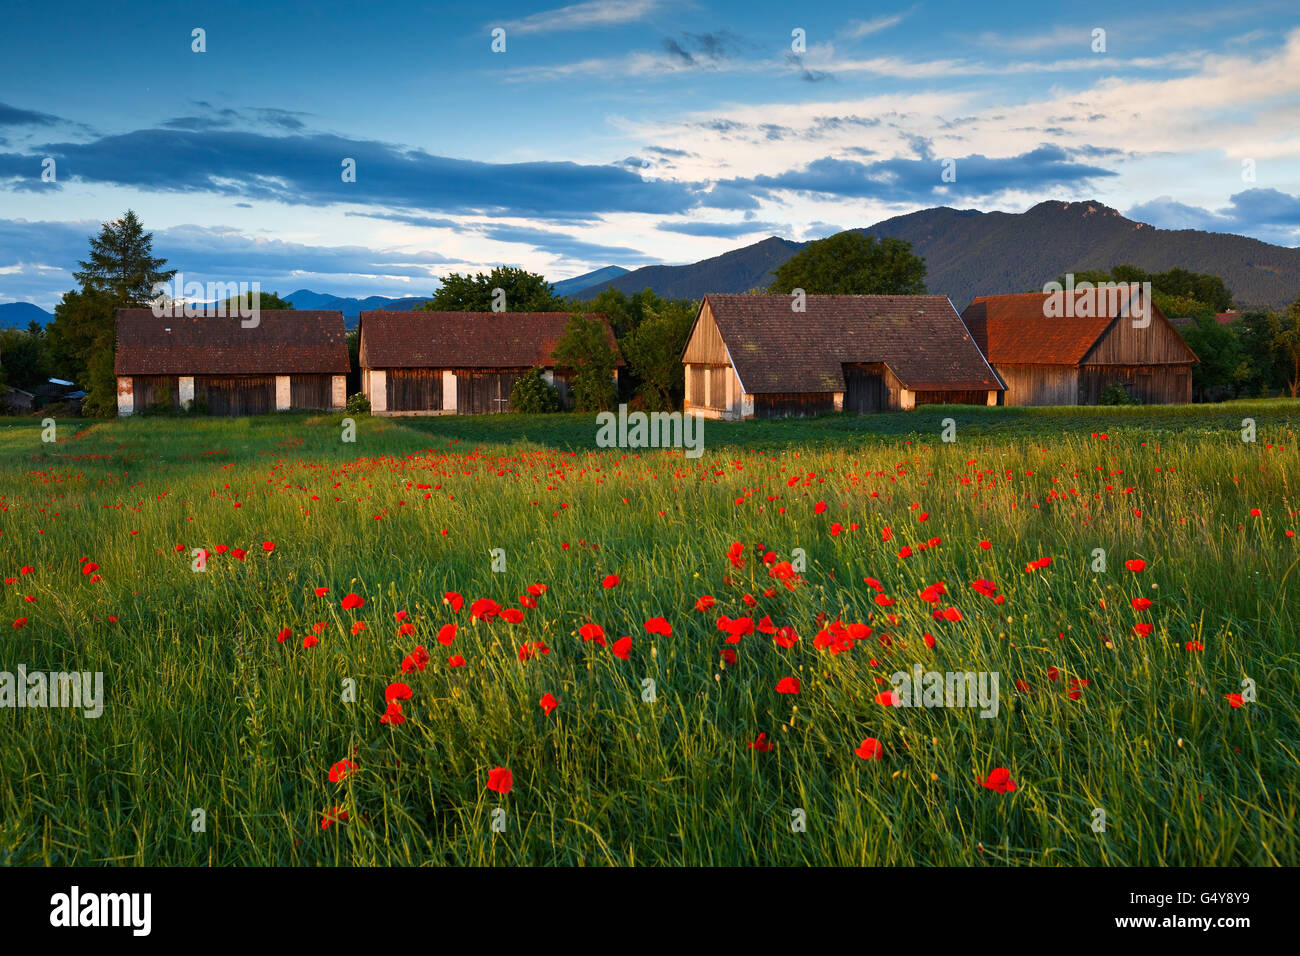 Traditional barns in Turiec region, northern Slovakia. - Stock Image